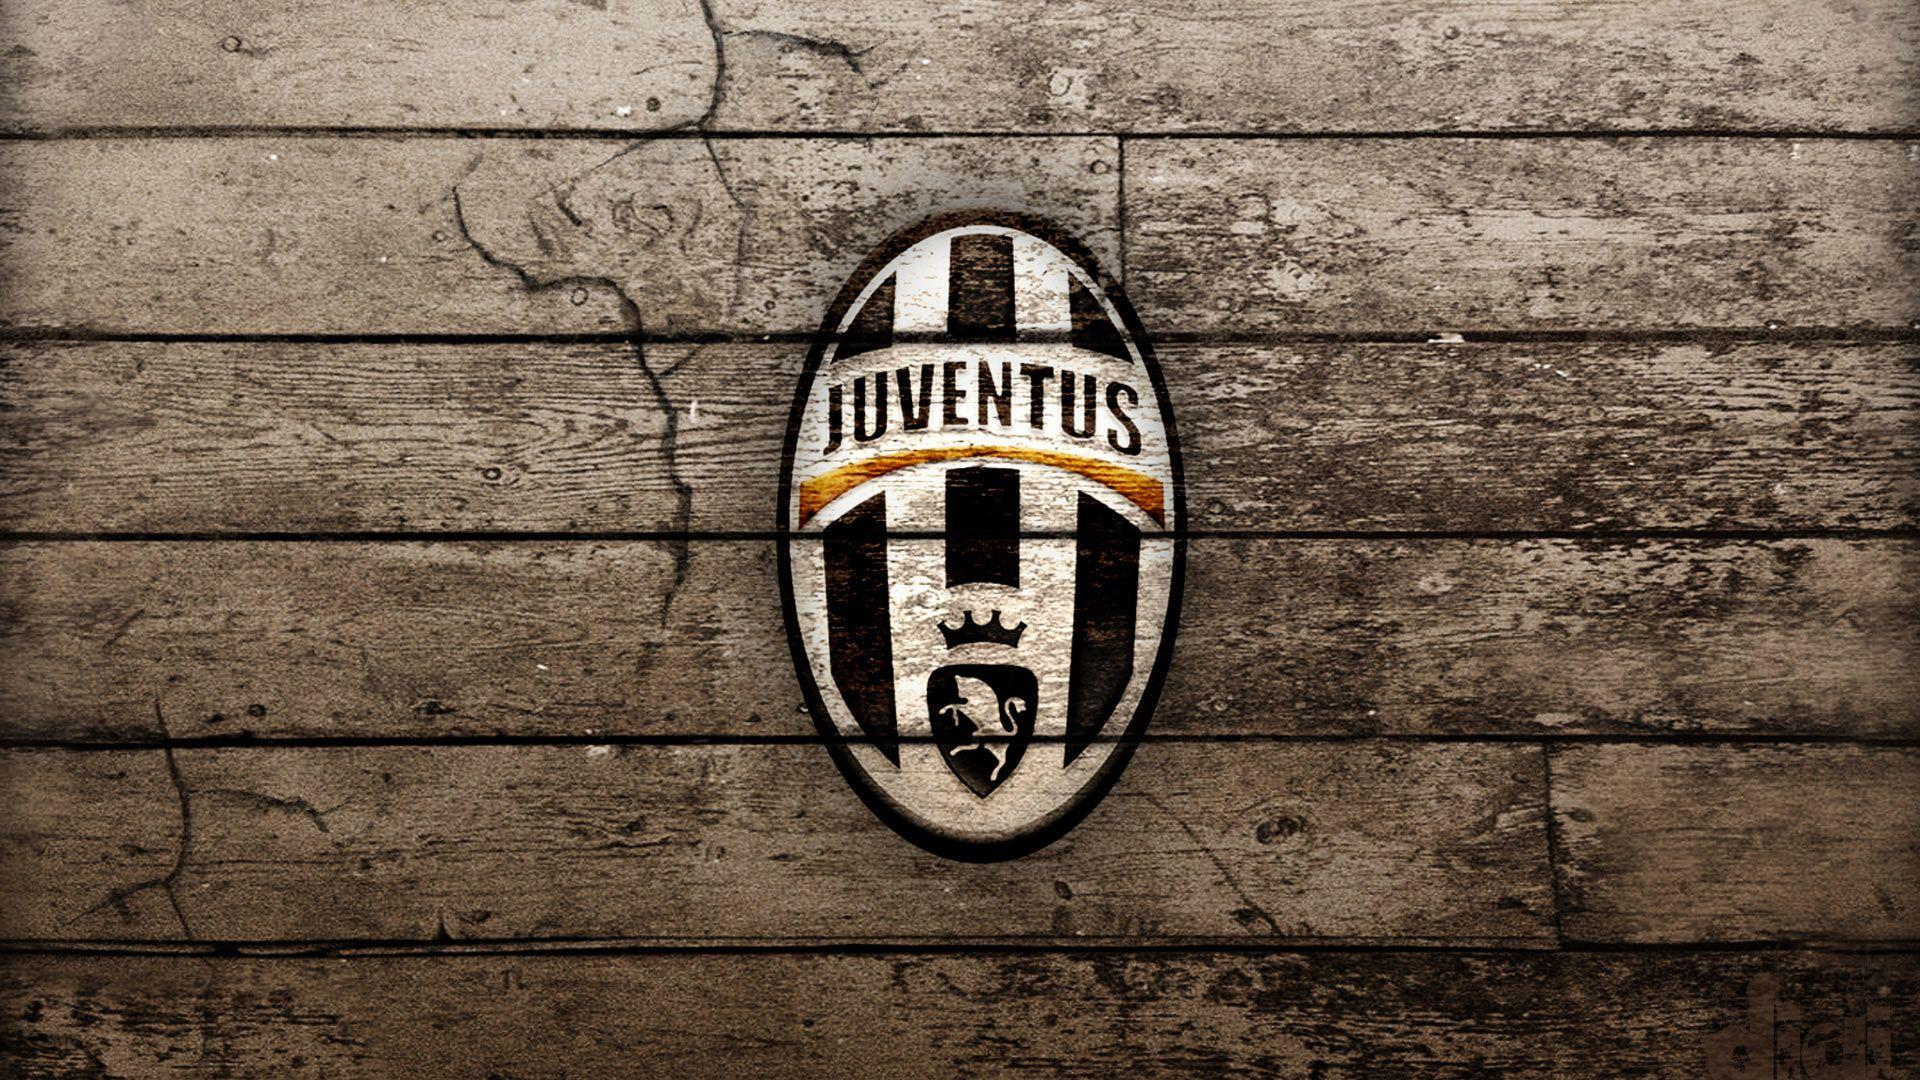 Juventus hd wallpapers wallpaper cave for Sfondo juventus hd